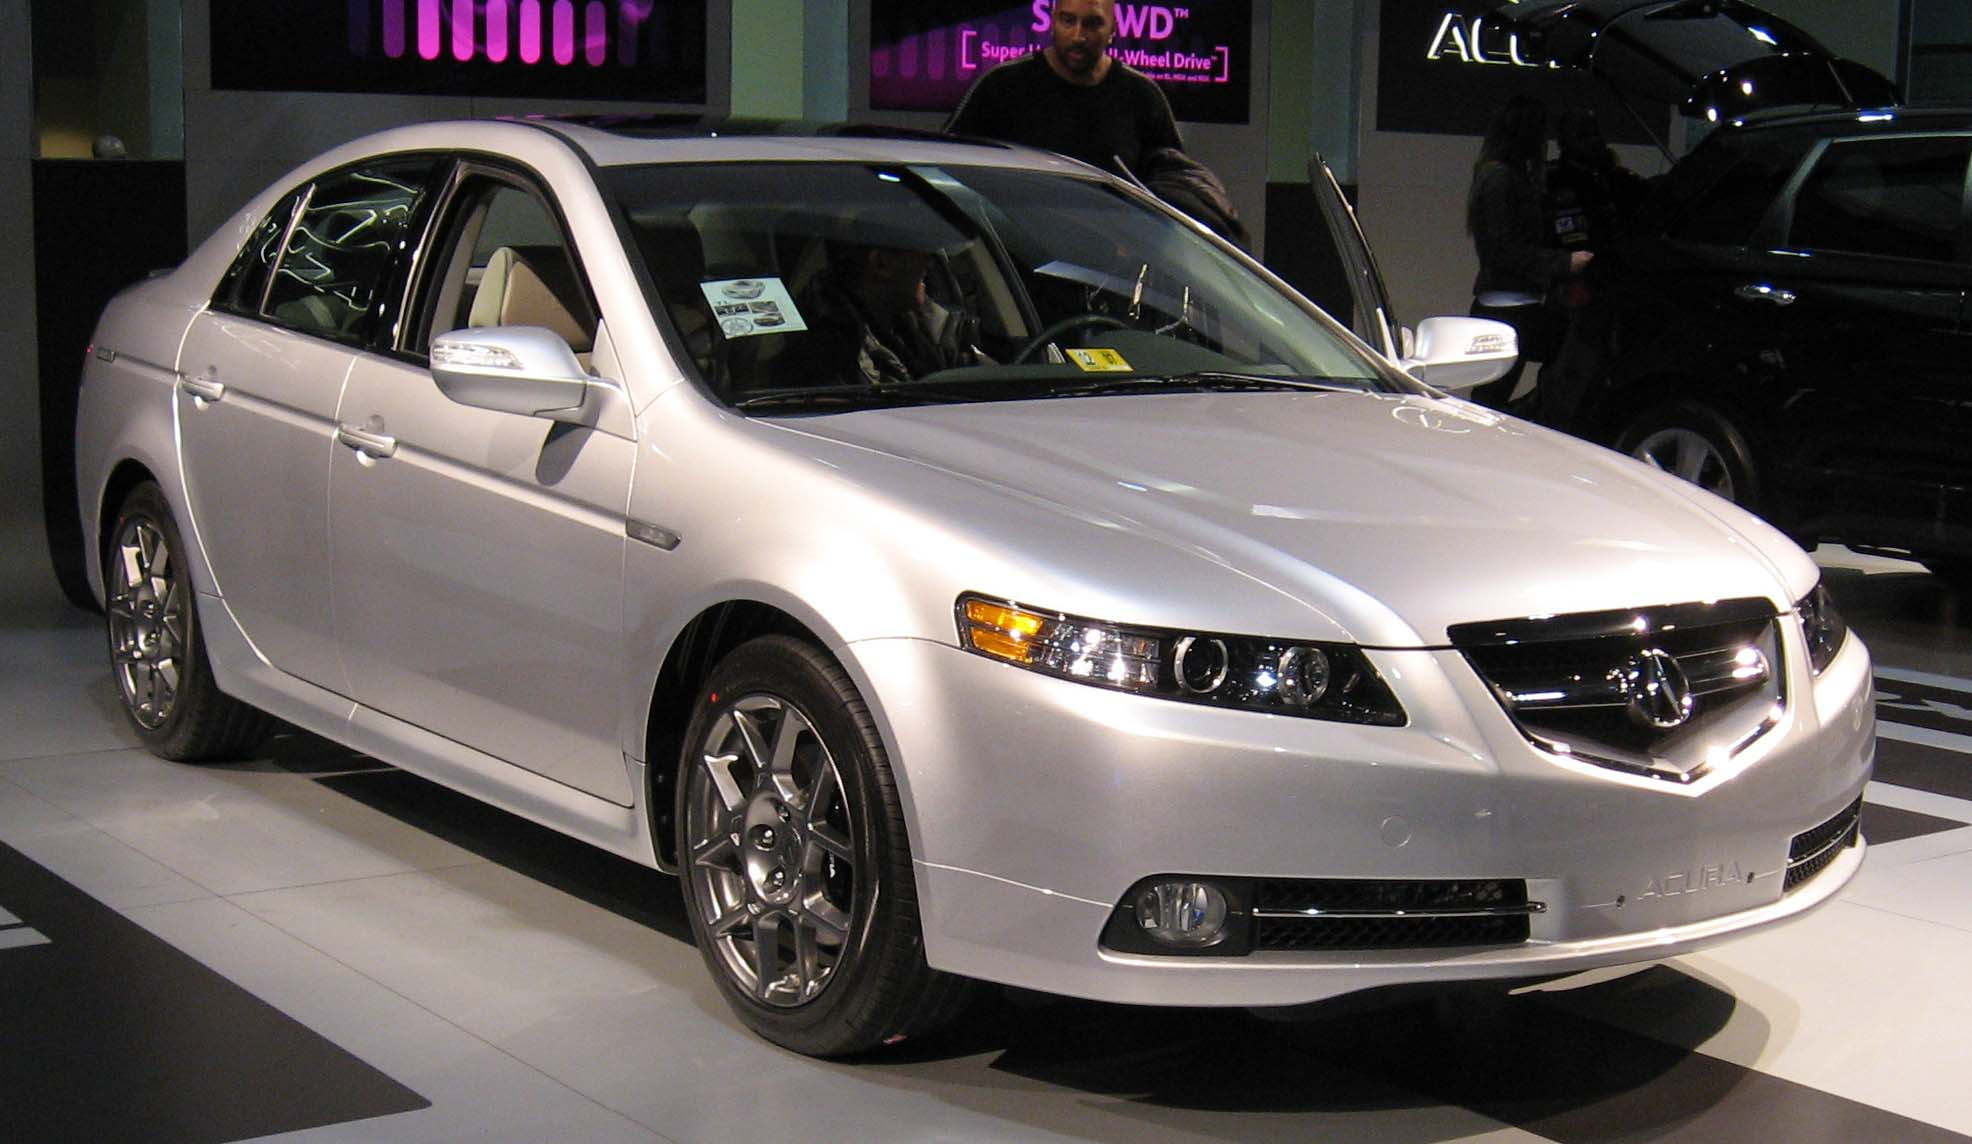 file 2007 acura tl types wikimedia commons. Black Bedroom Furniture Sets. Home Design Ideas